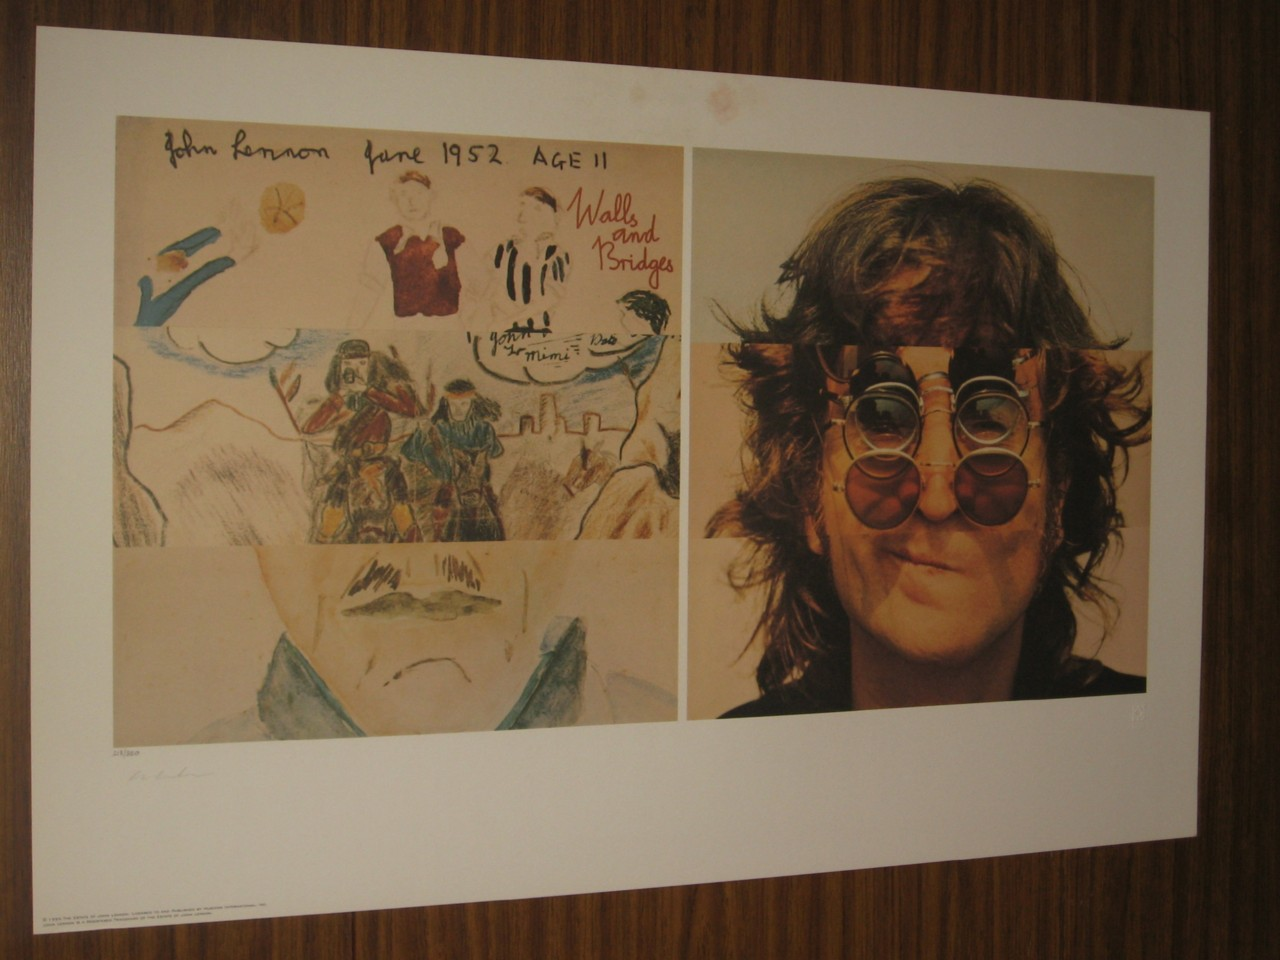 THE-BEATLES-YOKO-ONO-SIGNED-JOHN-LENNON-WALLS-AND-BRIDGES-LITHOGRAPH